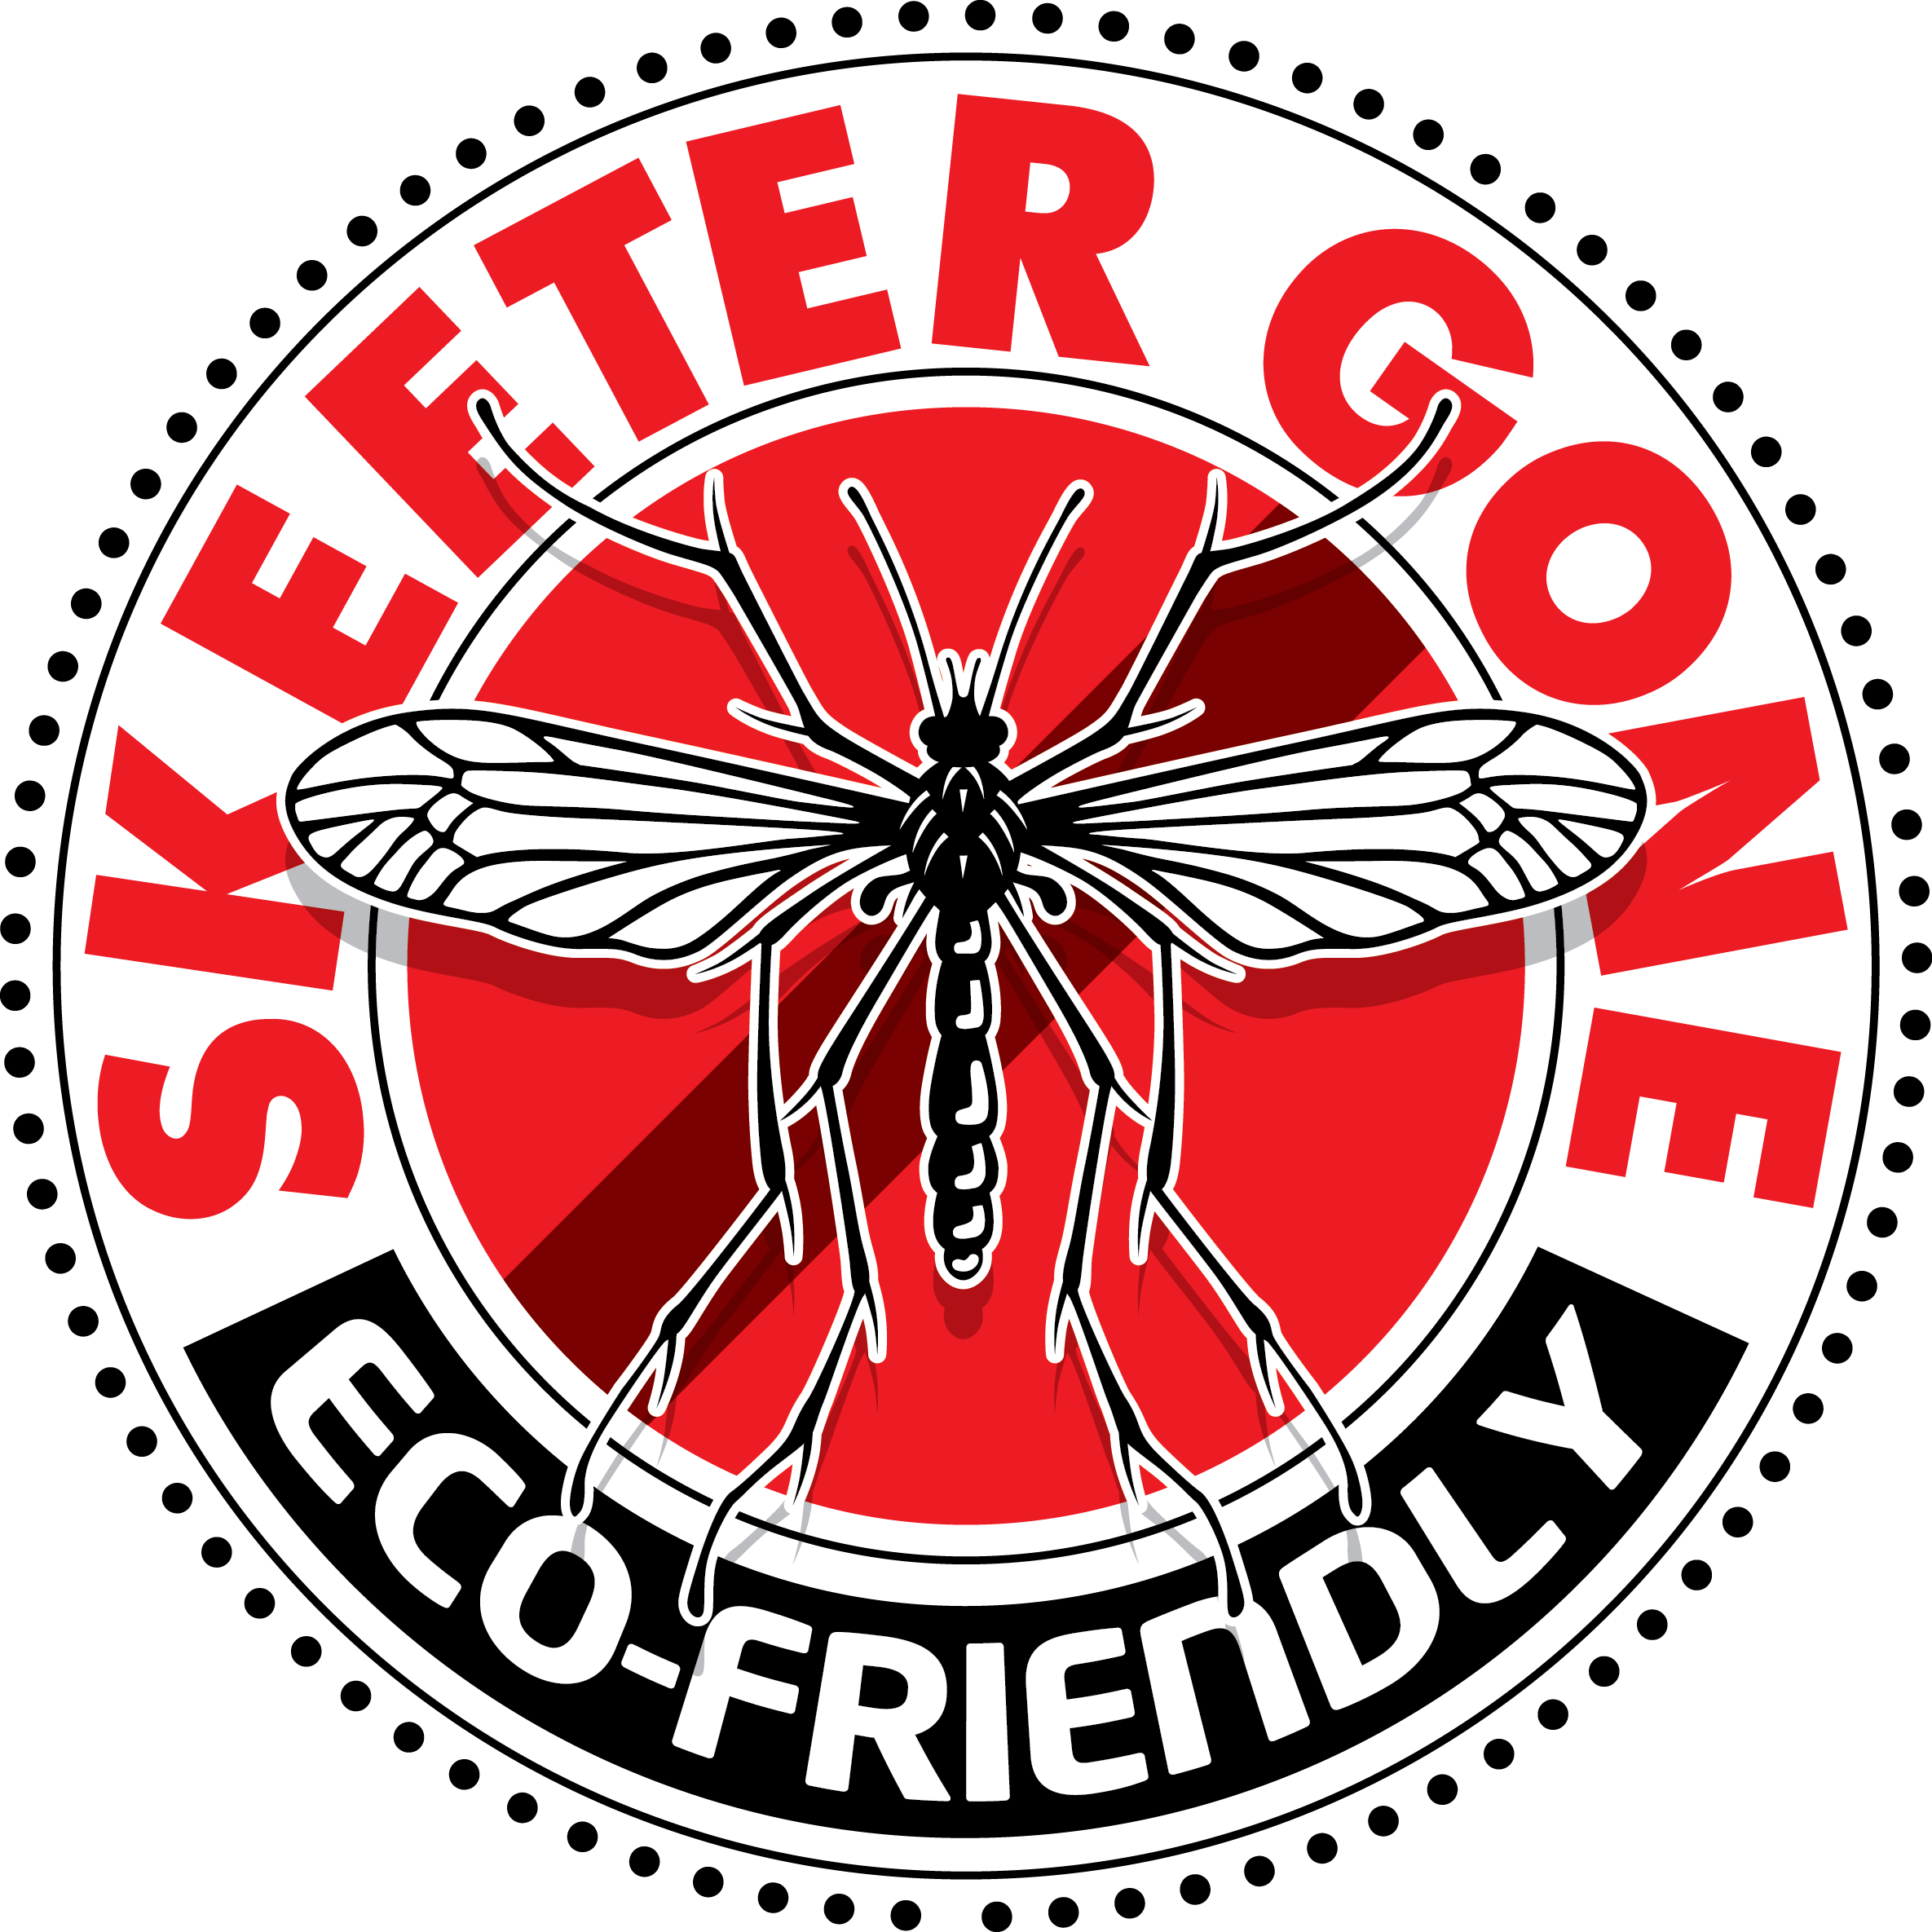 FA Skeeter Gone Logo